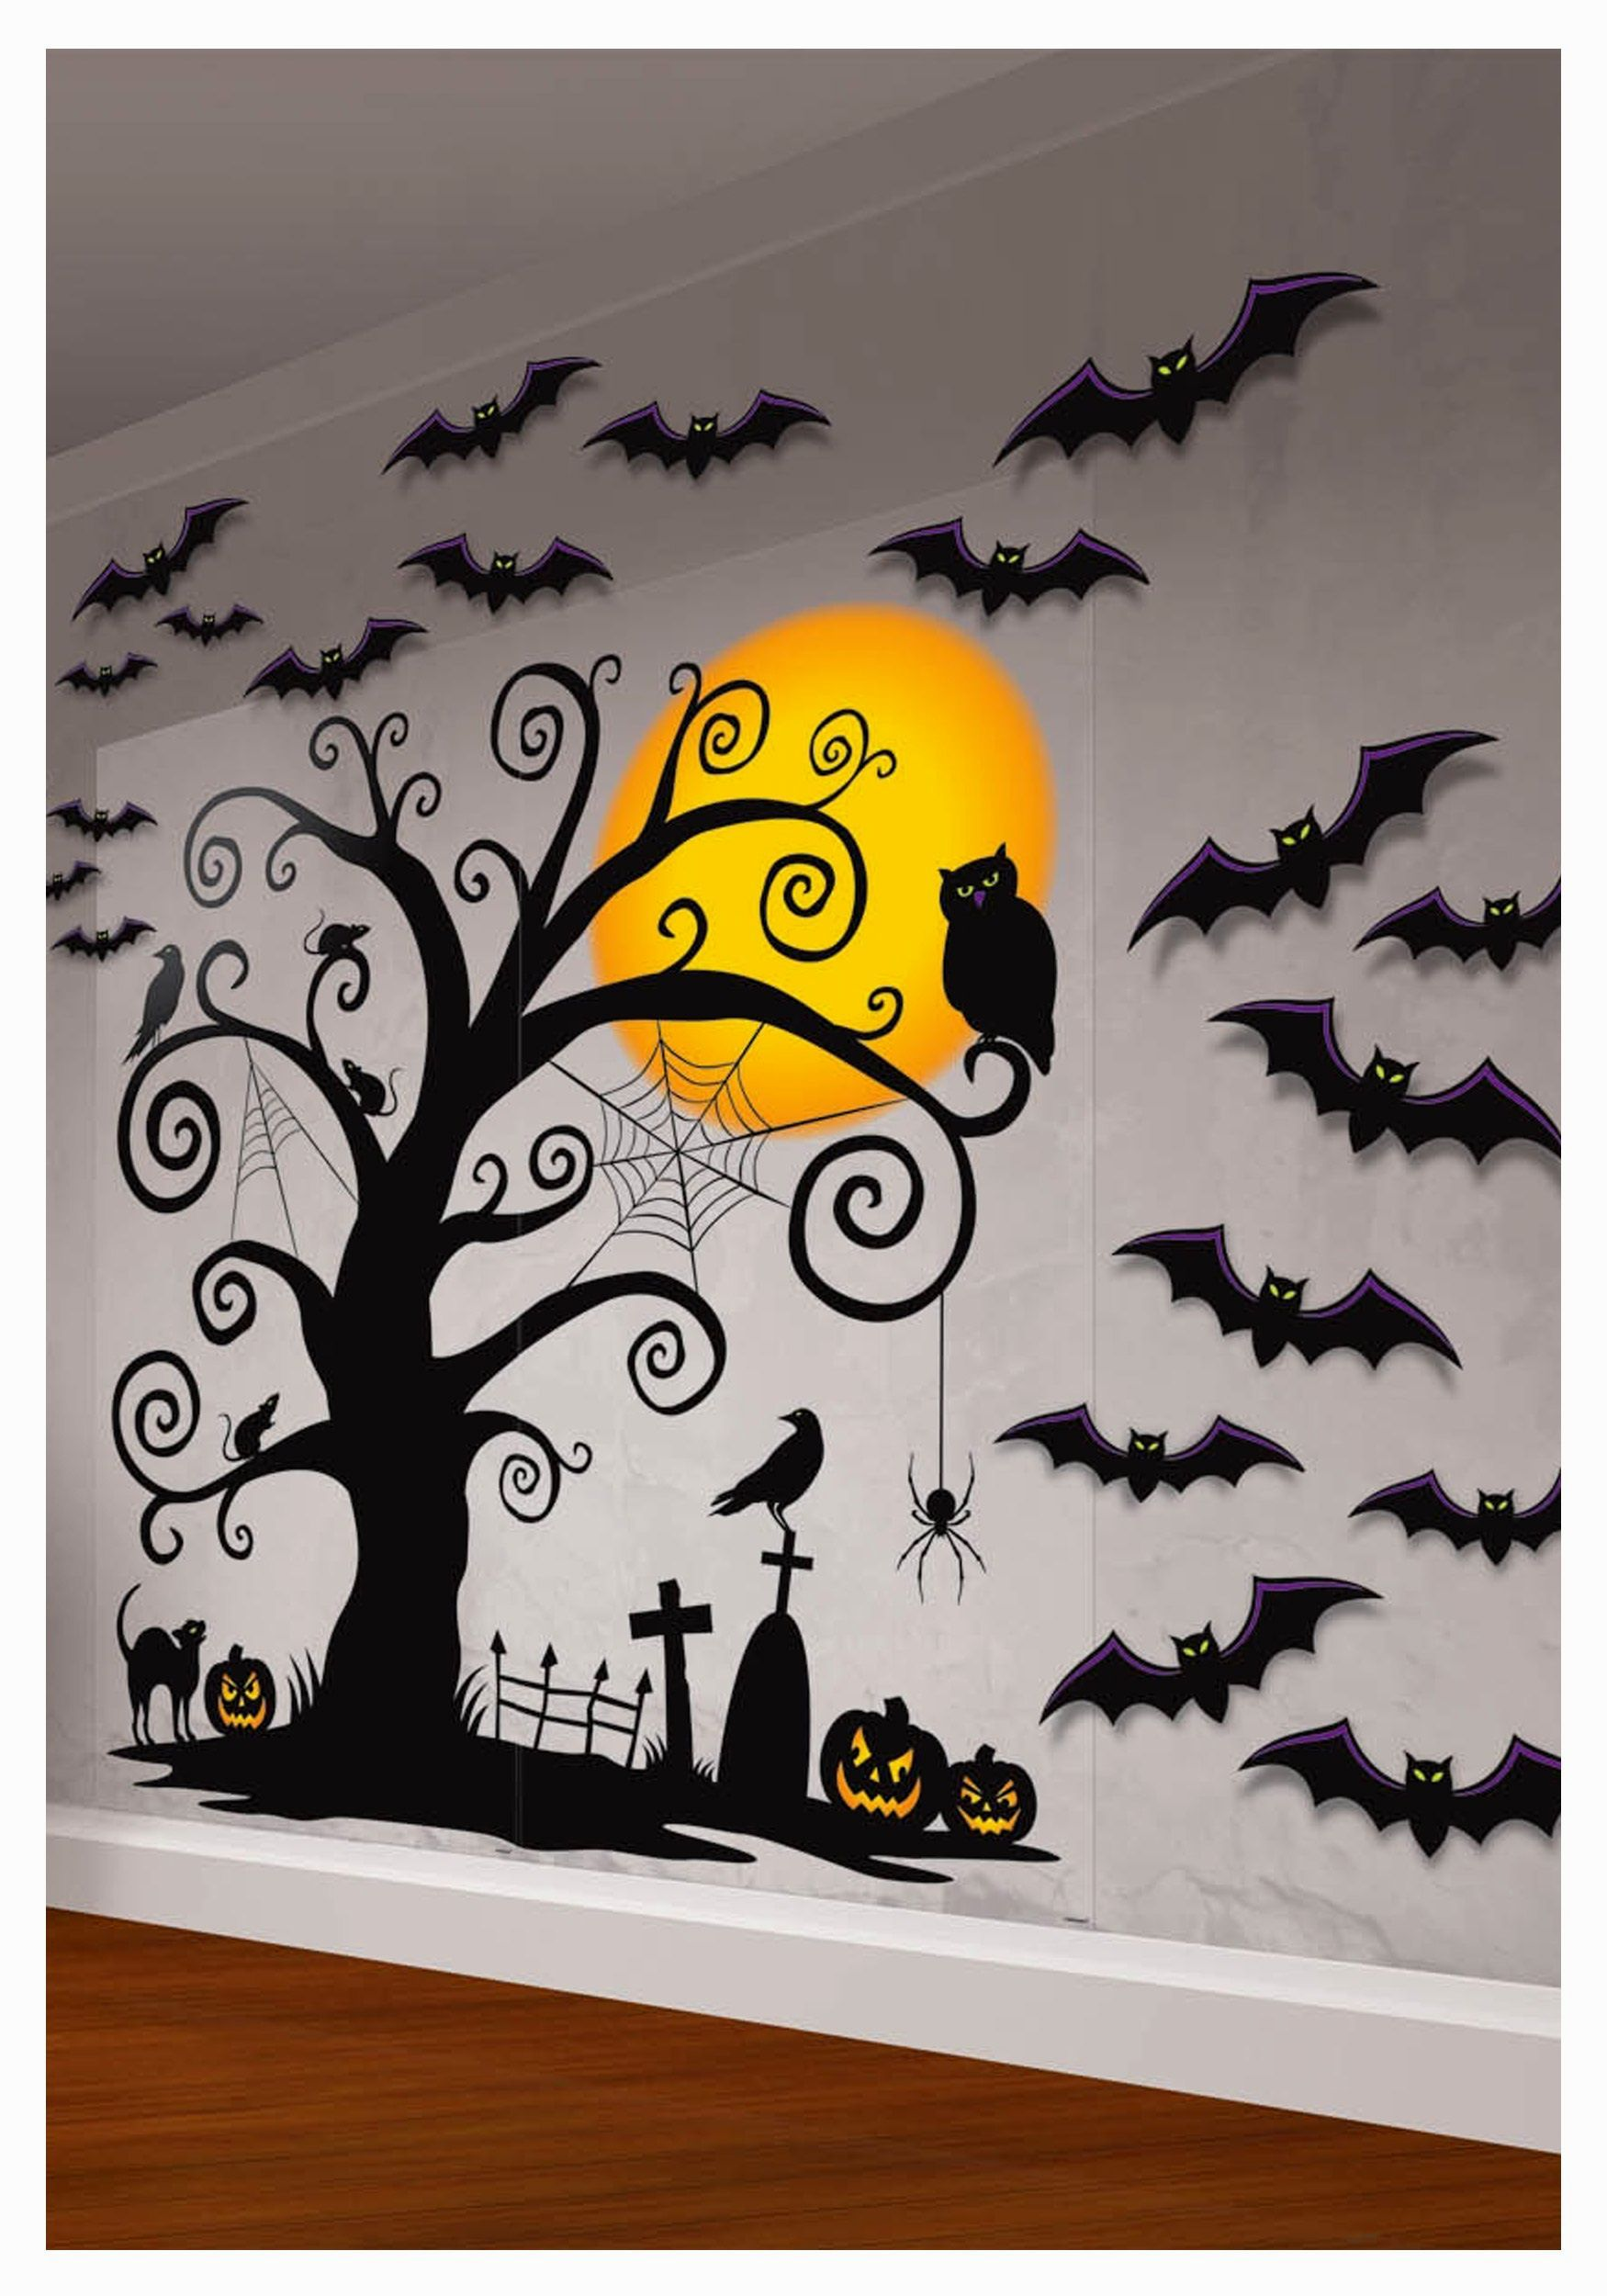 Resultado de imagen de halloween decorations for the classroom door